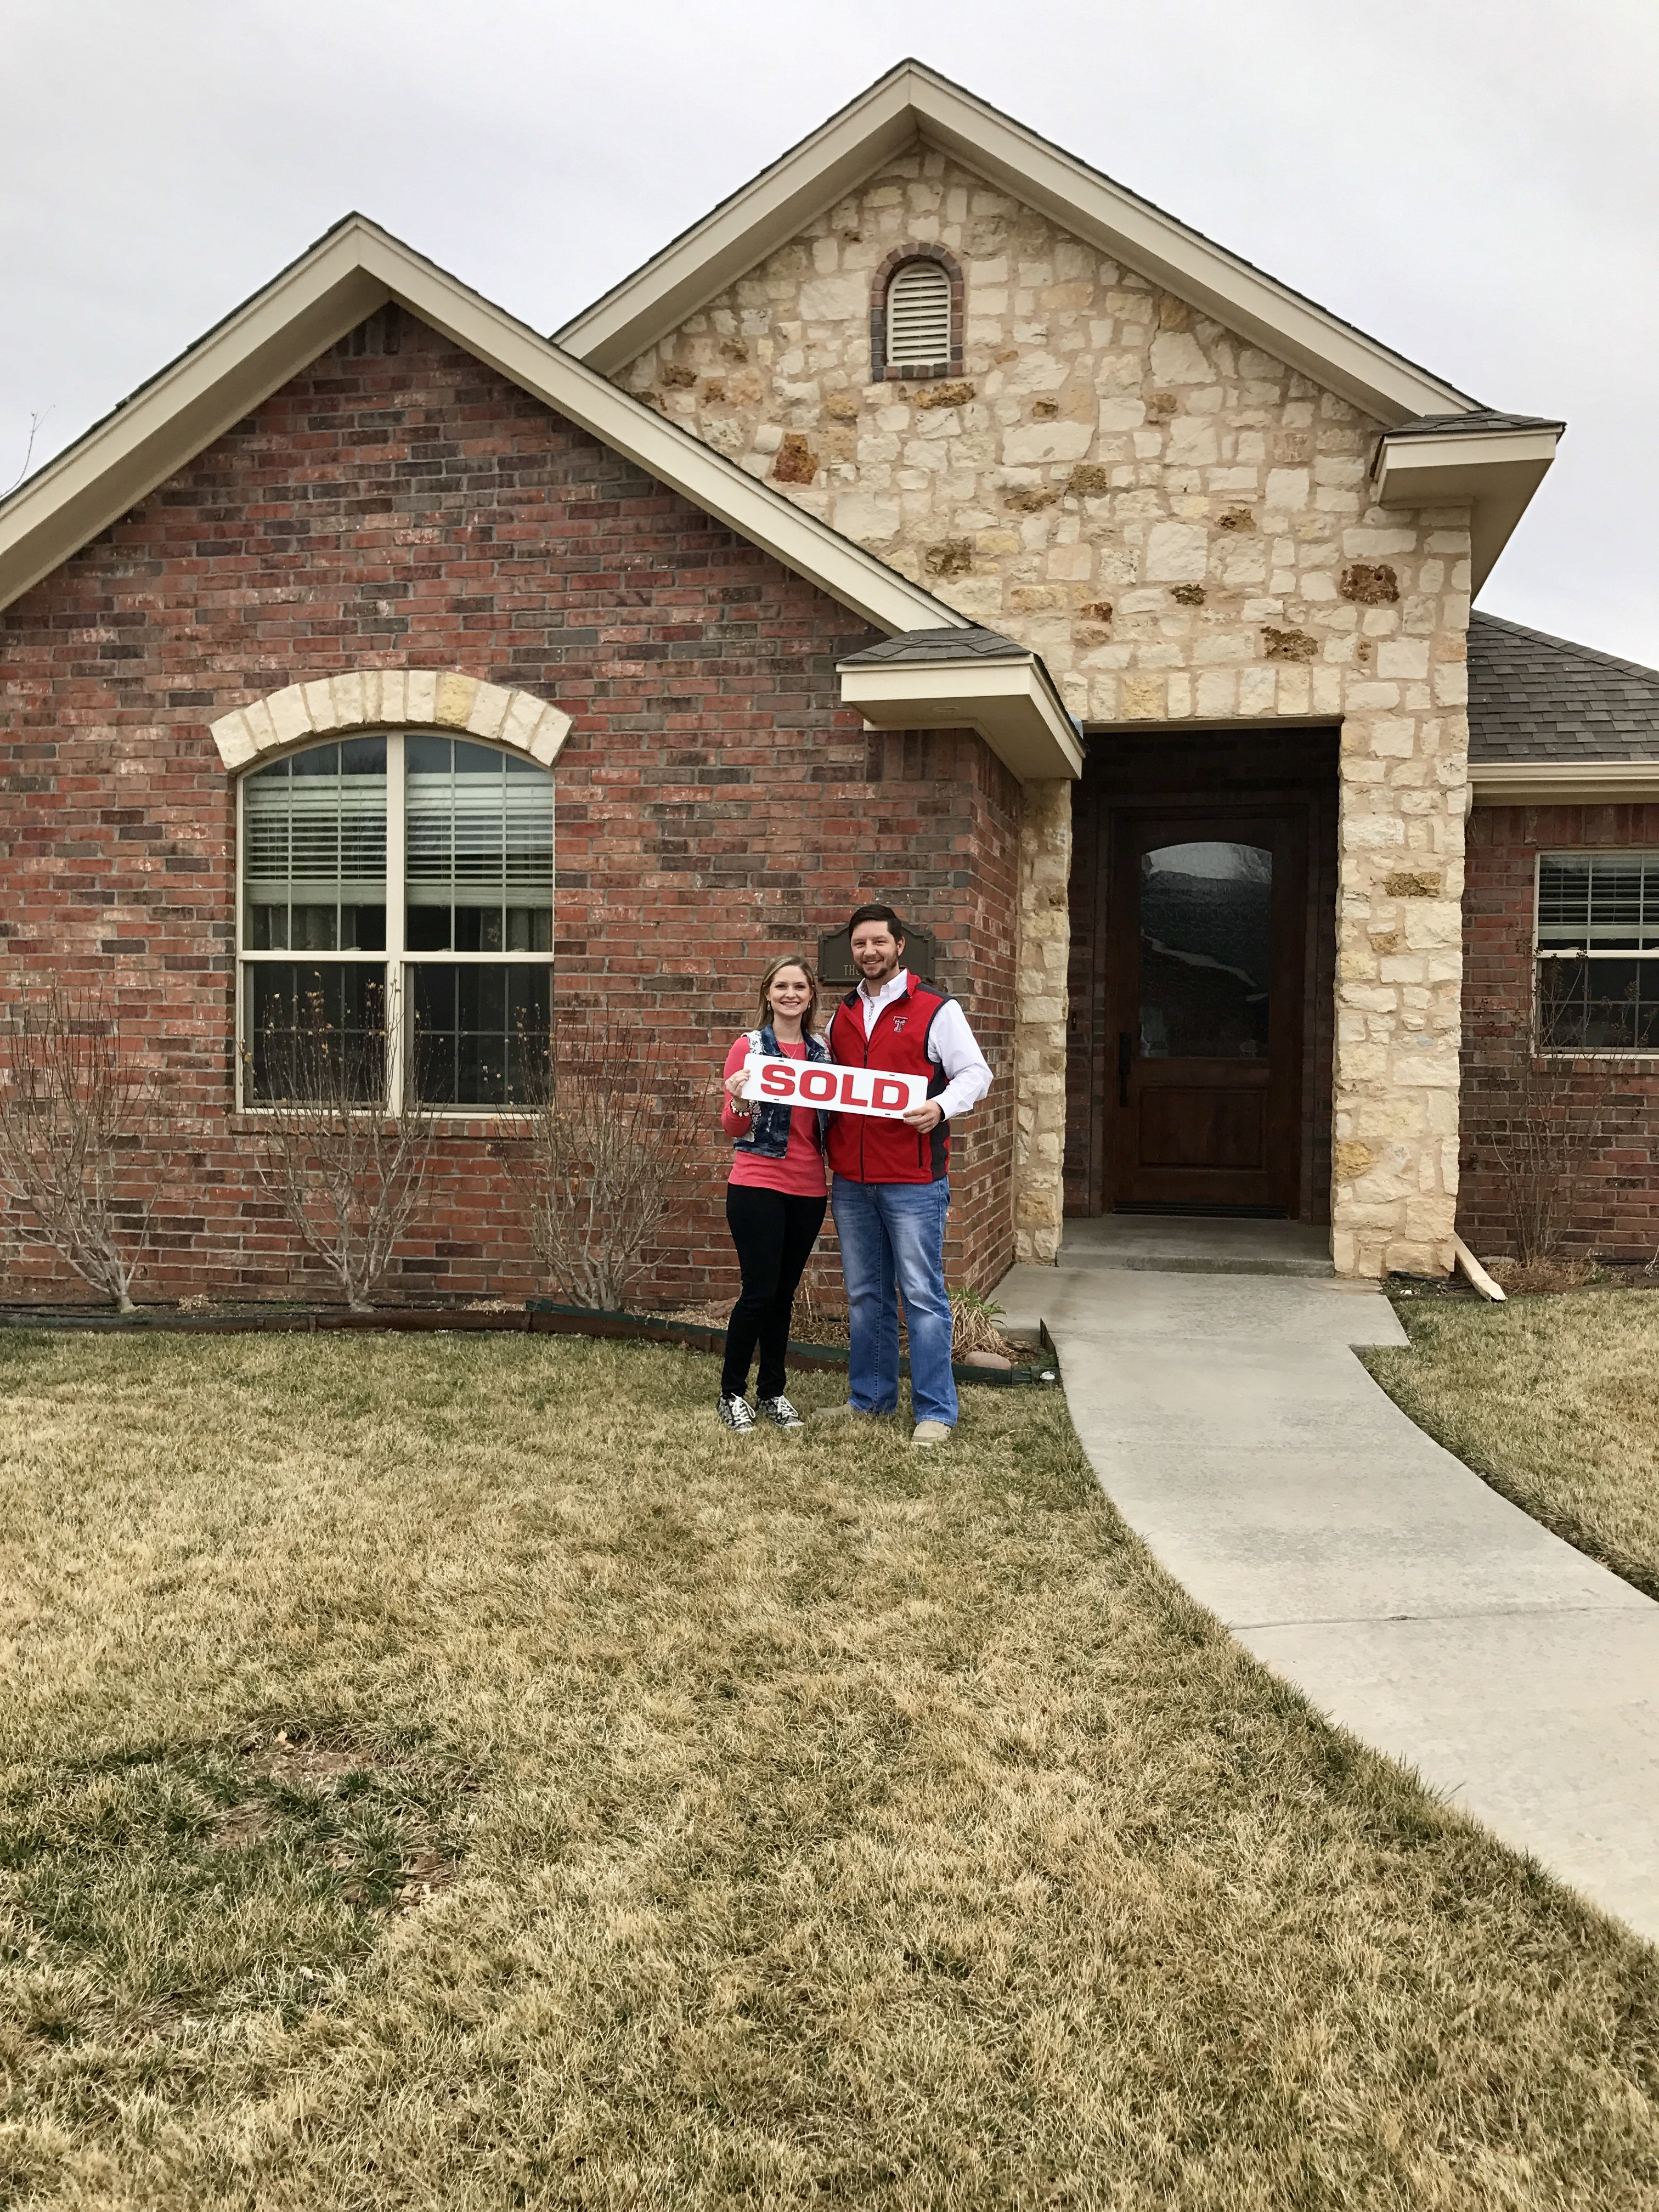 Landon's clients are excited to purchase their first home!